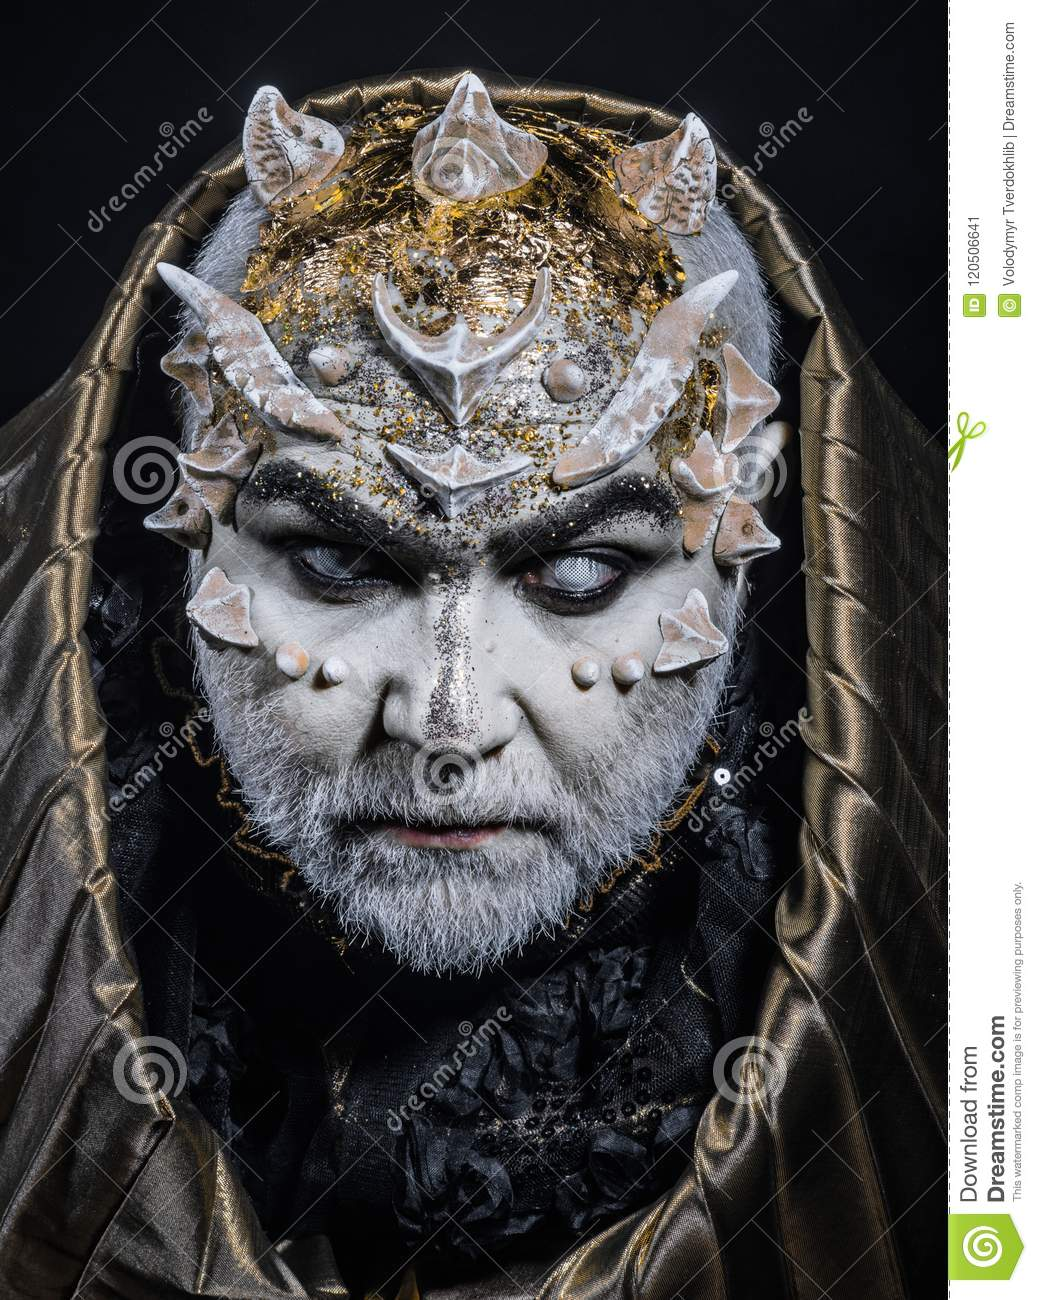 Man with thorns or warts, face covered with glitters. Demon with golden hood on black background. Senior man with white